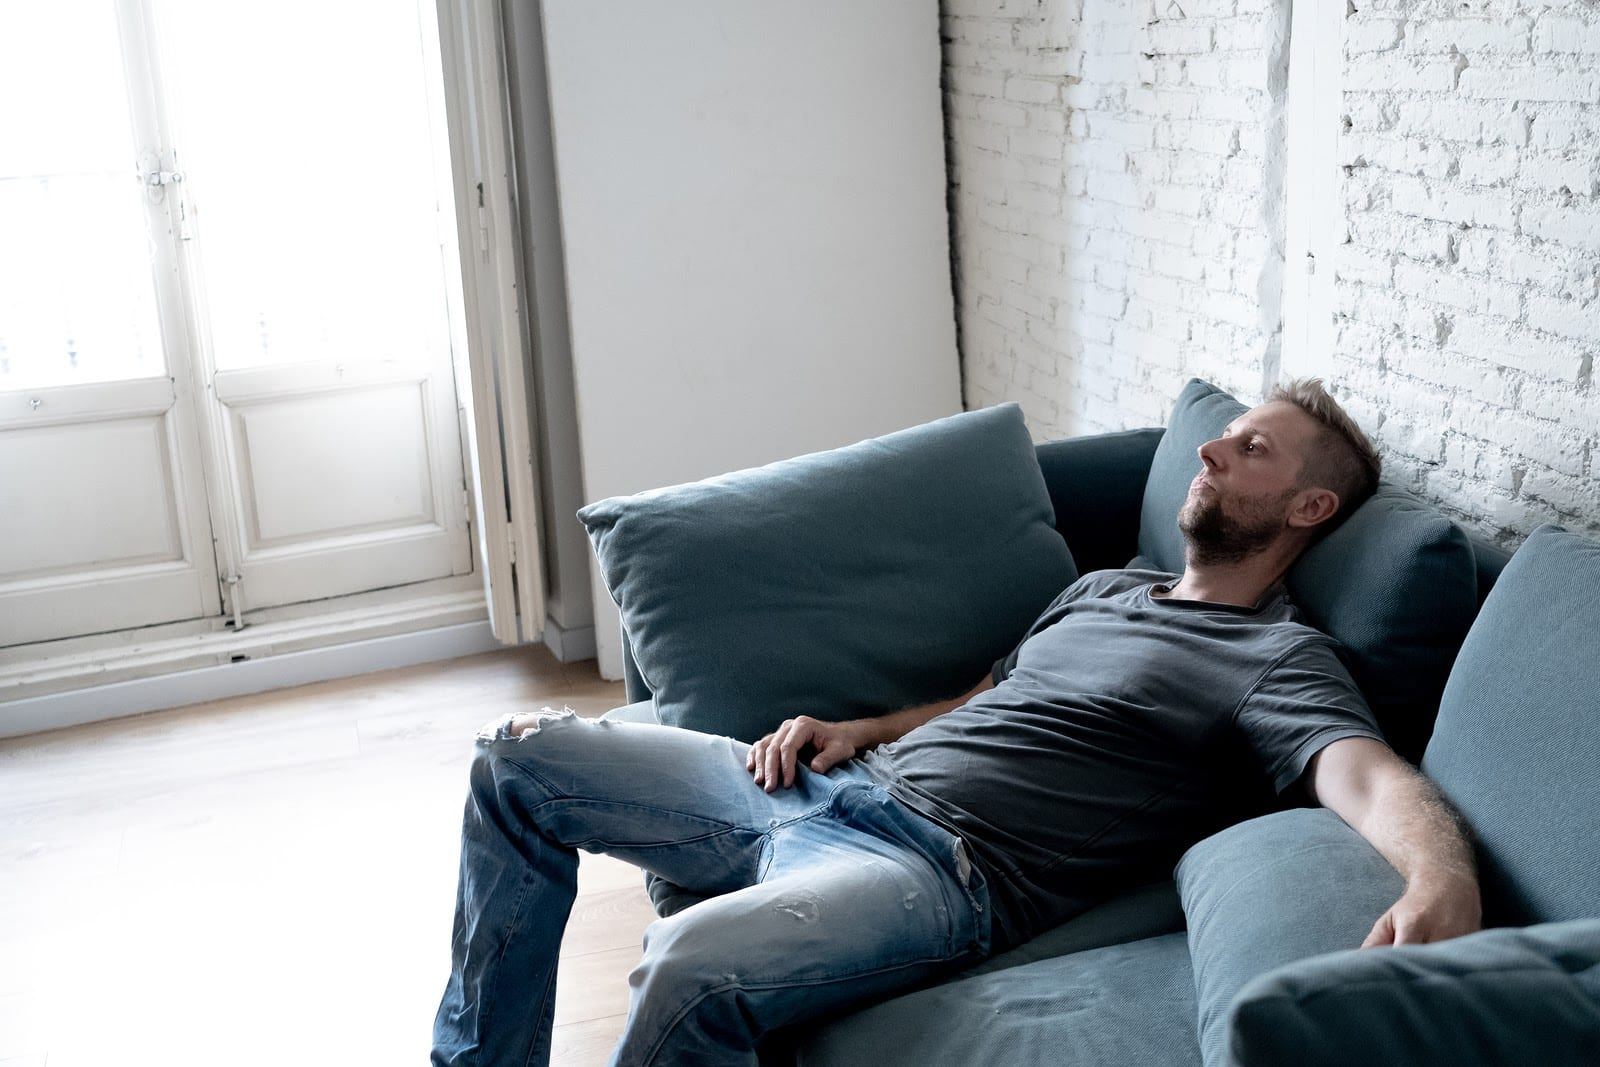 depressed man sitting on a couch